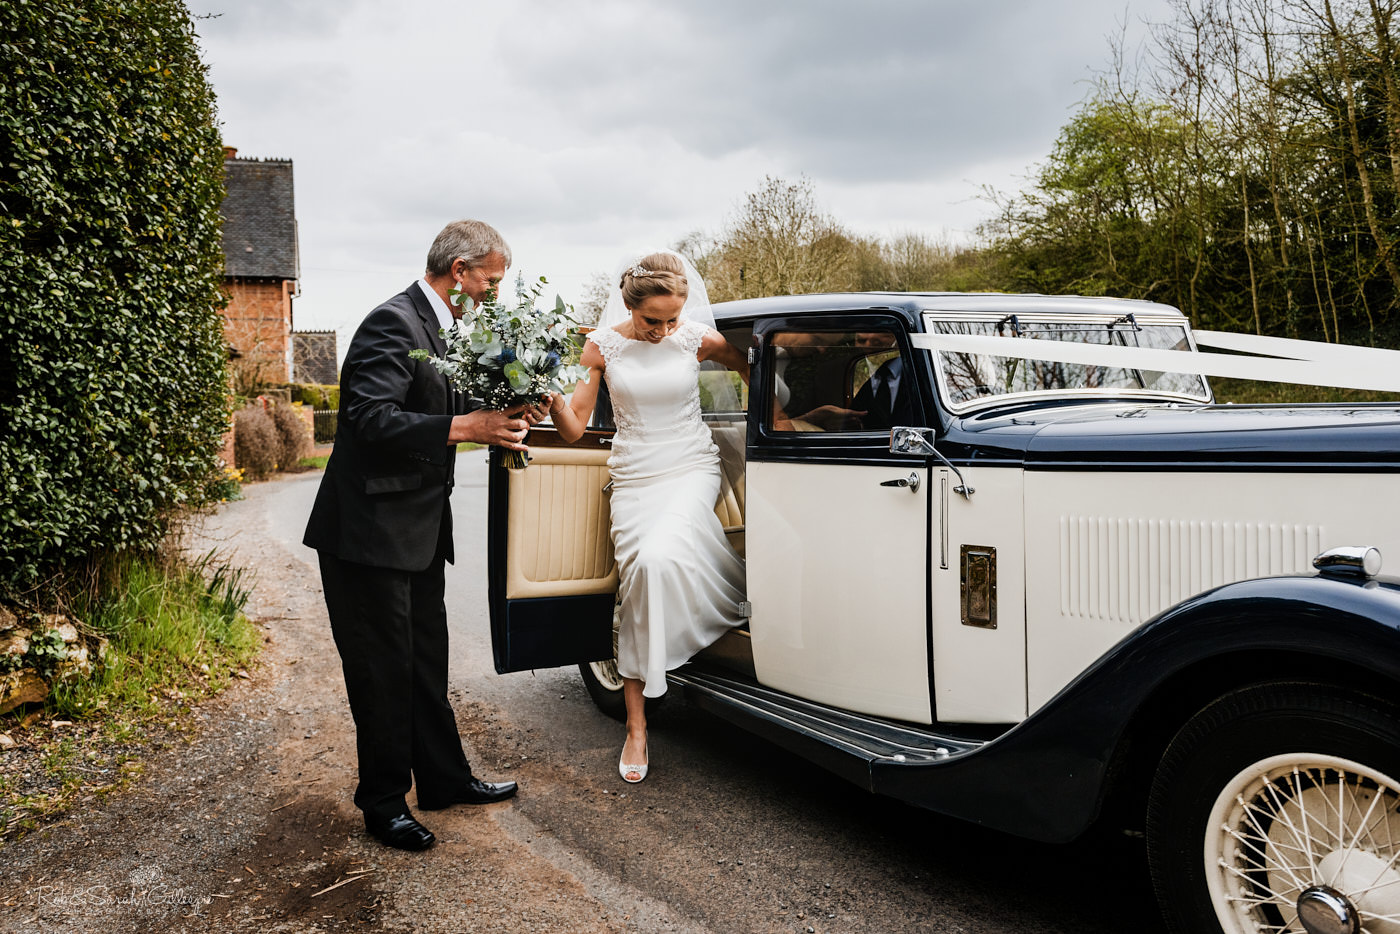 Bride arrives for wedding at St Kenelm in Romsley, Worcestershire